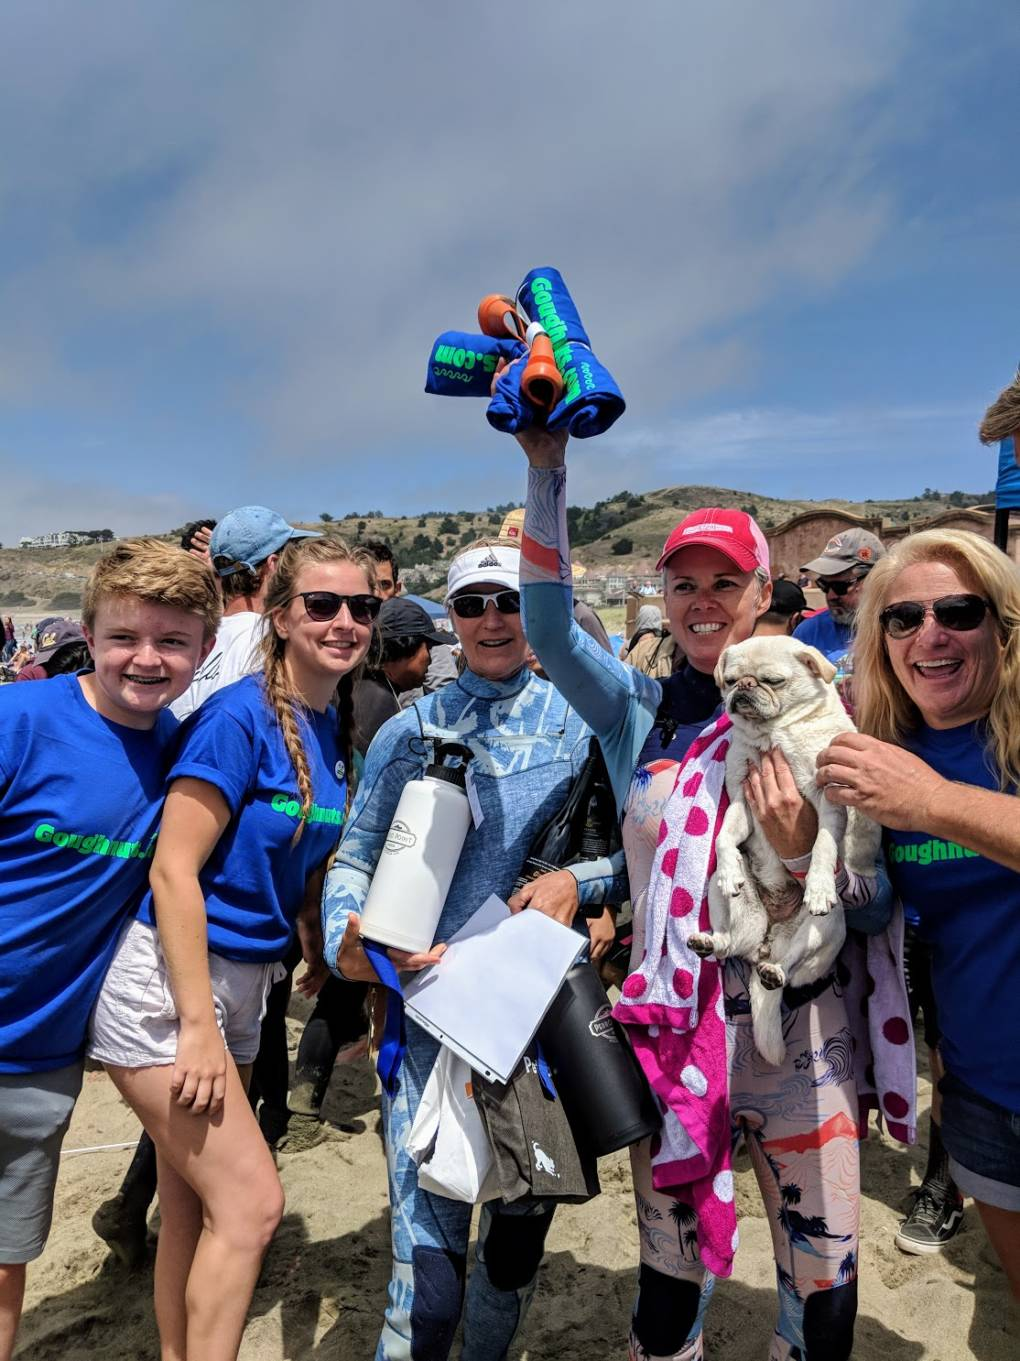 """Top Dog"" Gidget and her owners Fiona Kempin and Alecia Nelson pose for pictures after her big win. Gidget does tricks like 360 turns and 'walking the board' during her surf events."